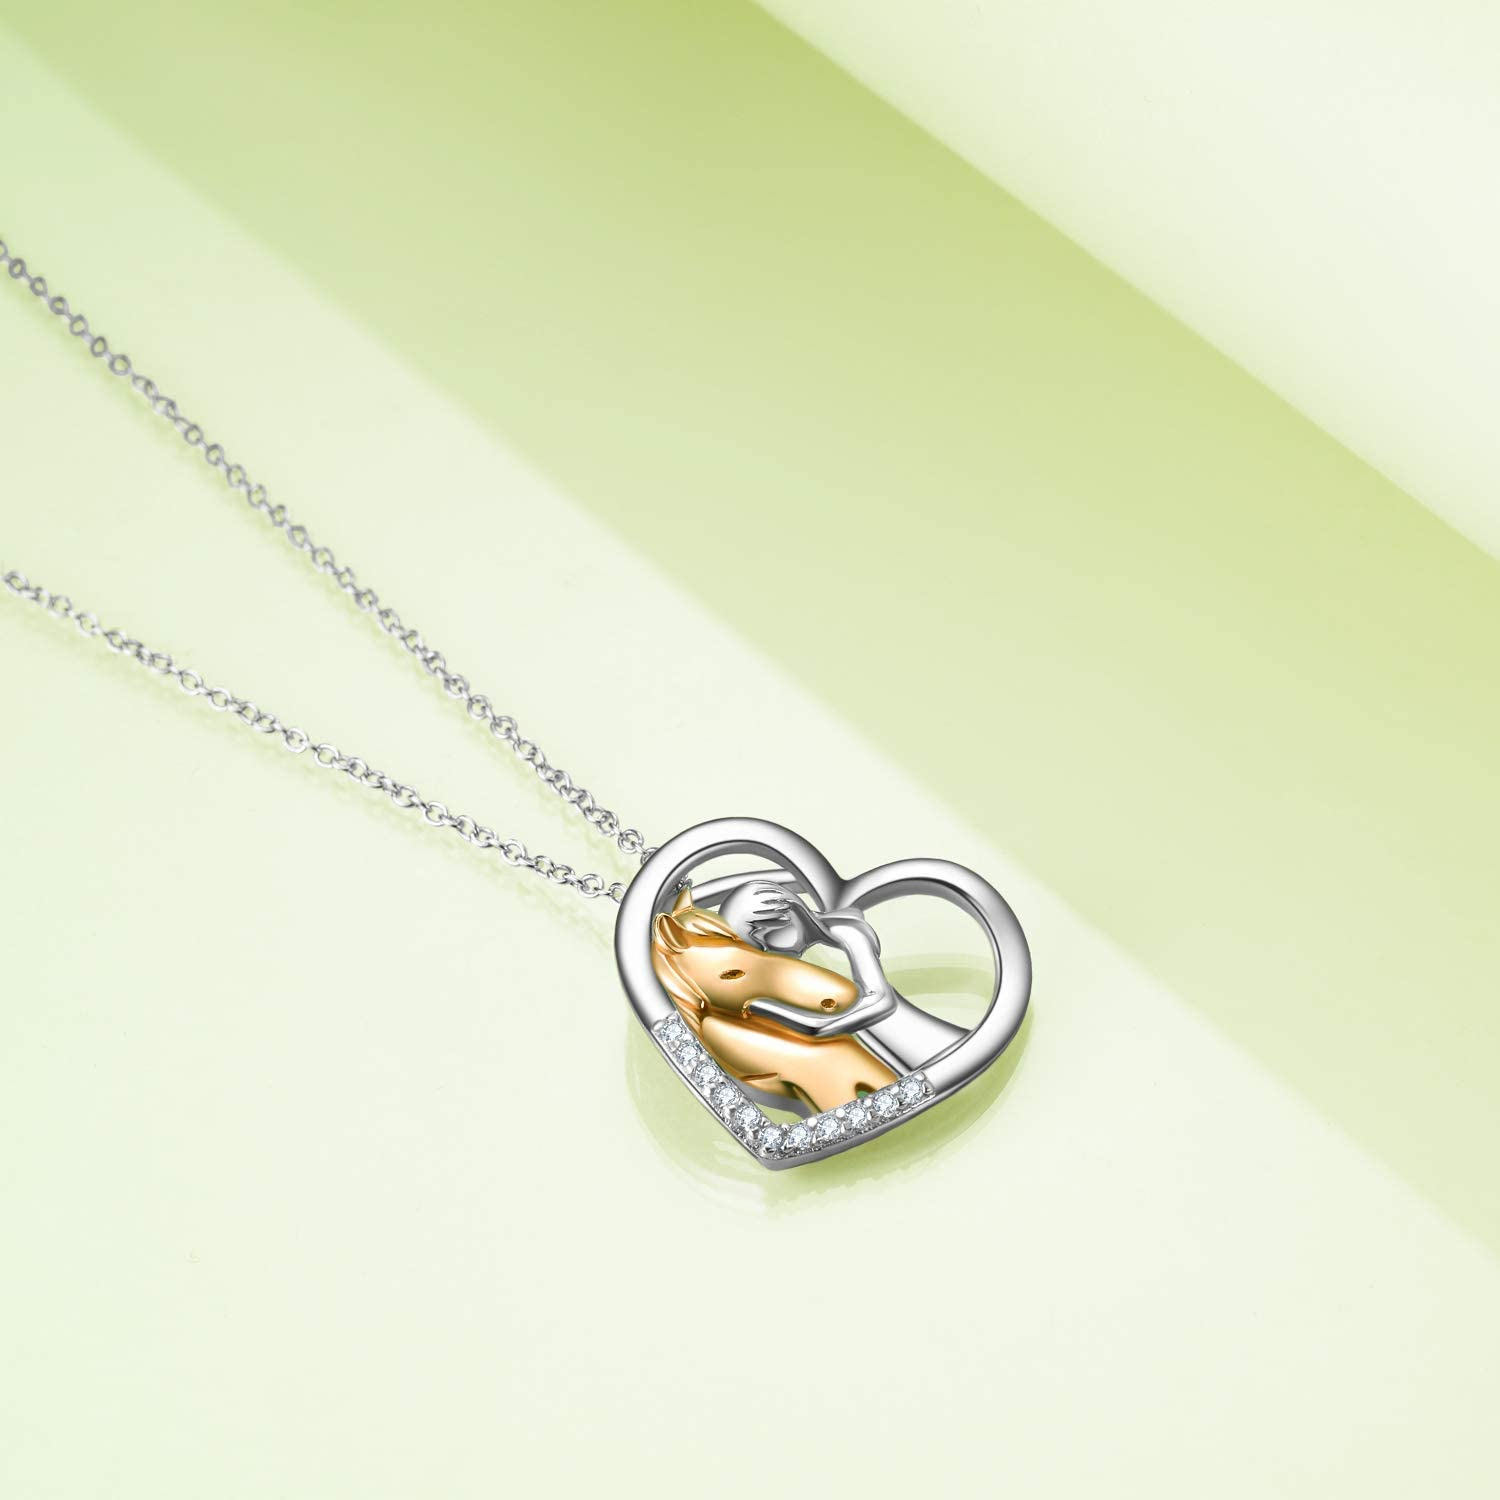 YFN Sterling Silver Lovely Animal Heart Moon Pendant Necklace Jewelry Gift for Women Girls 18